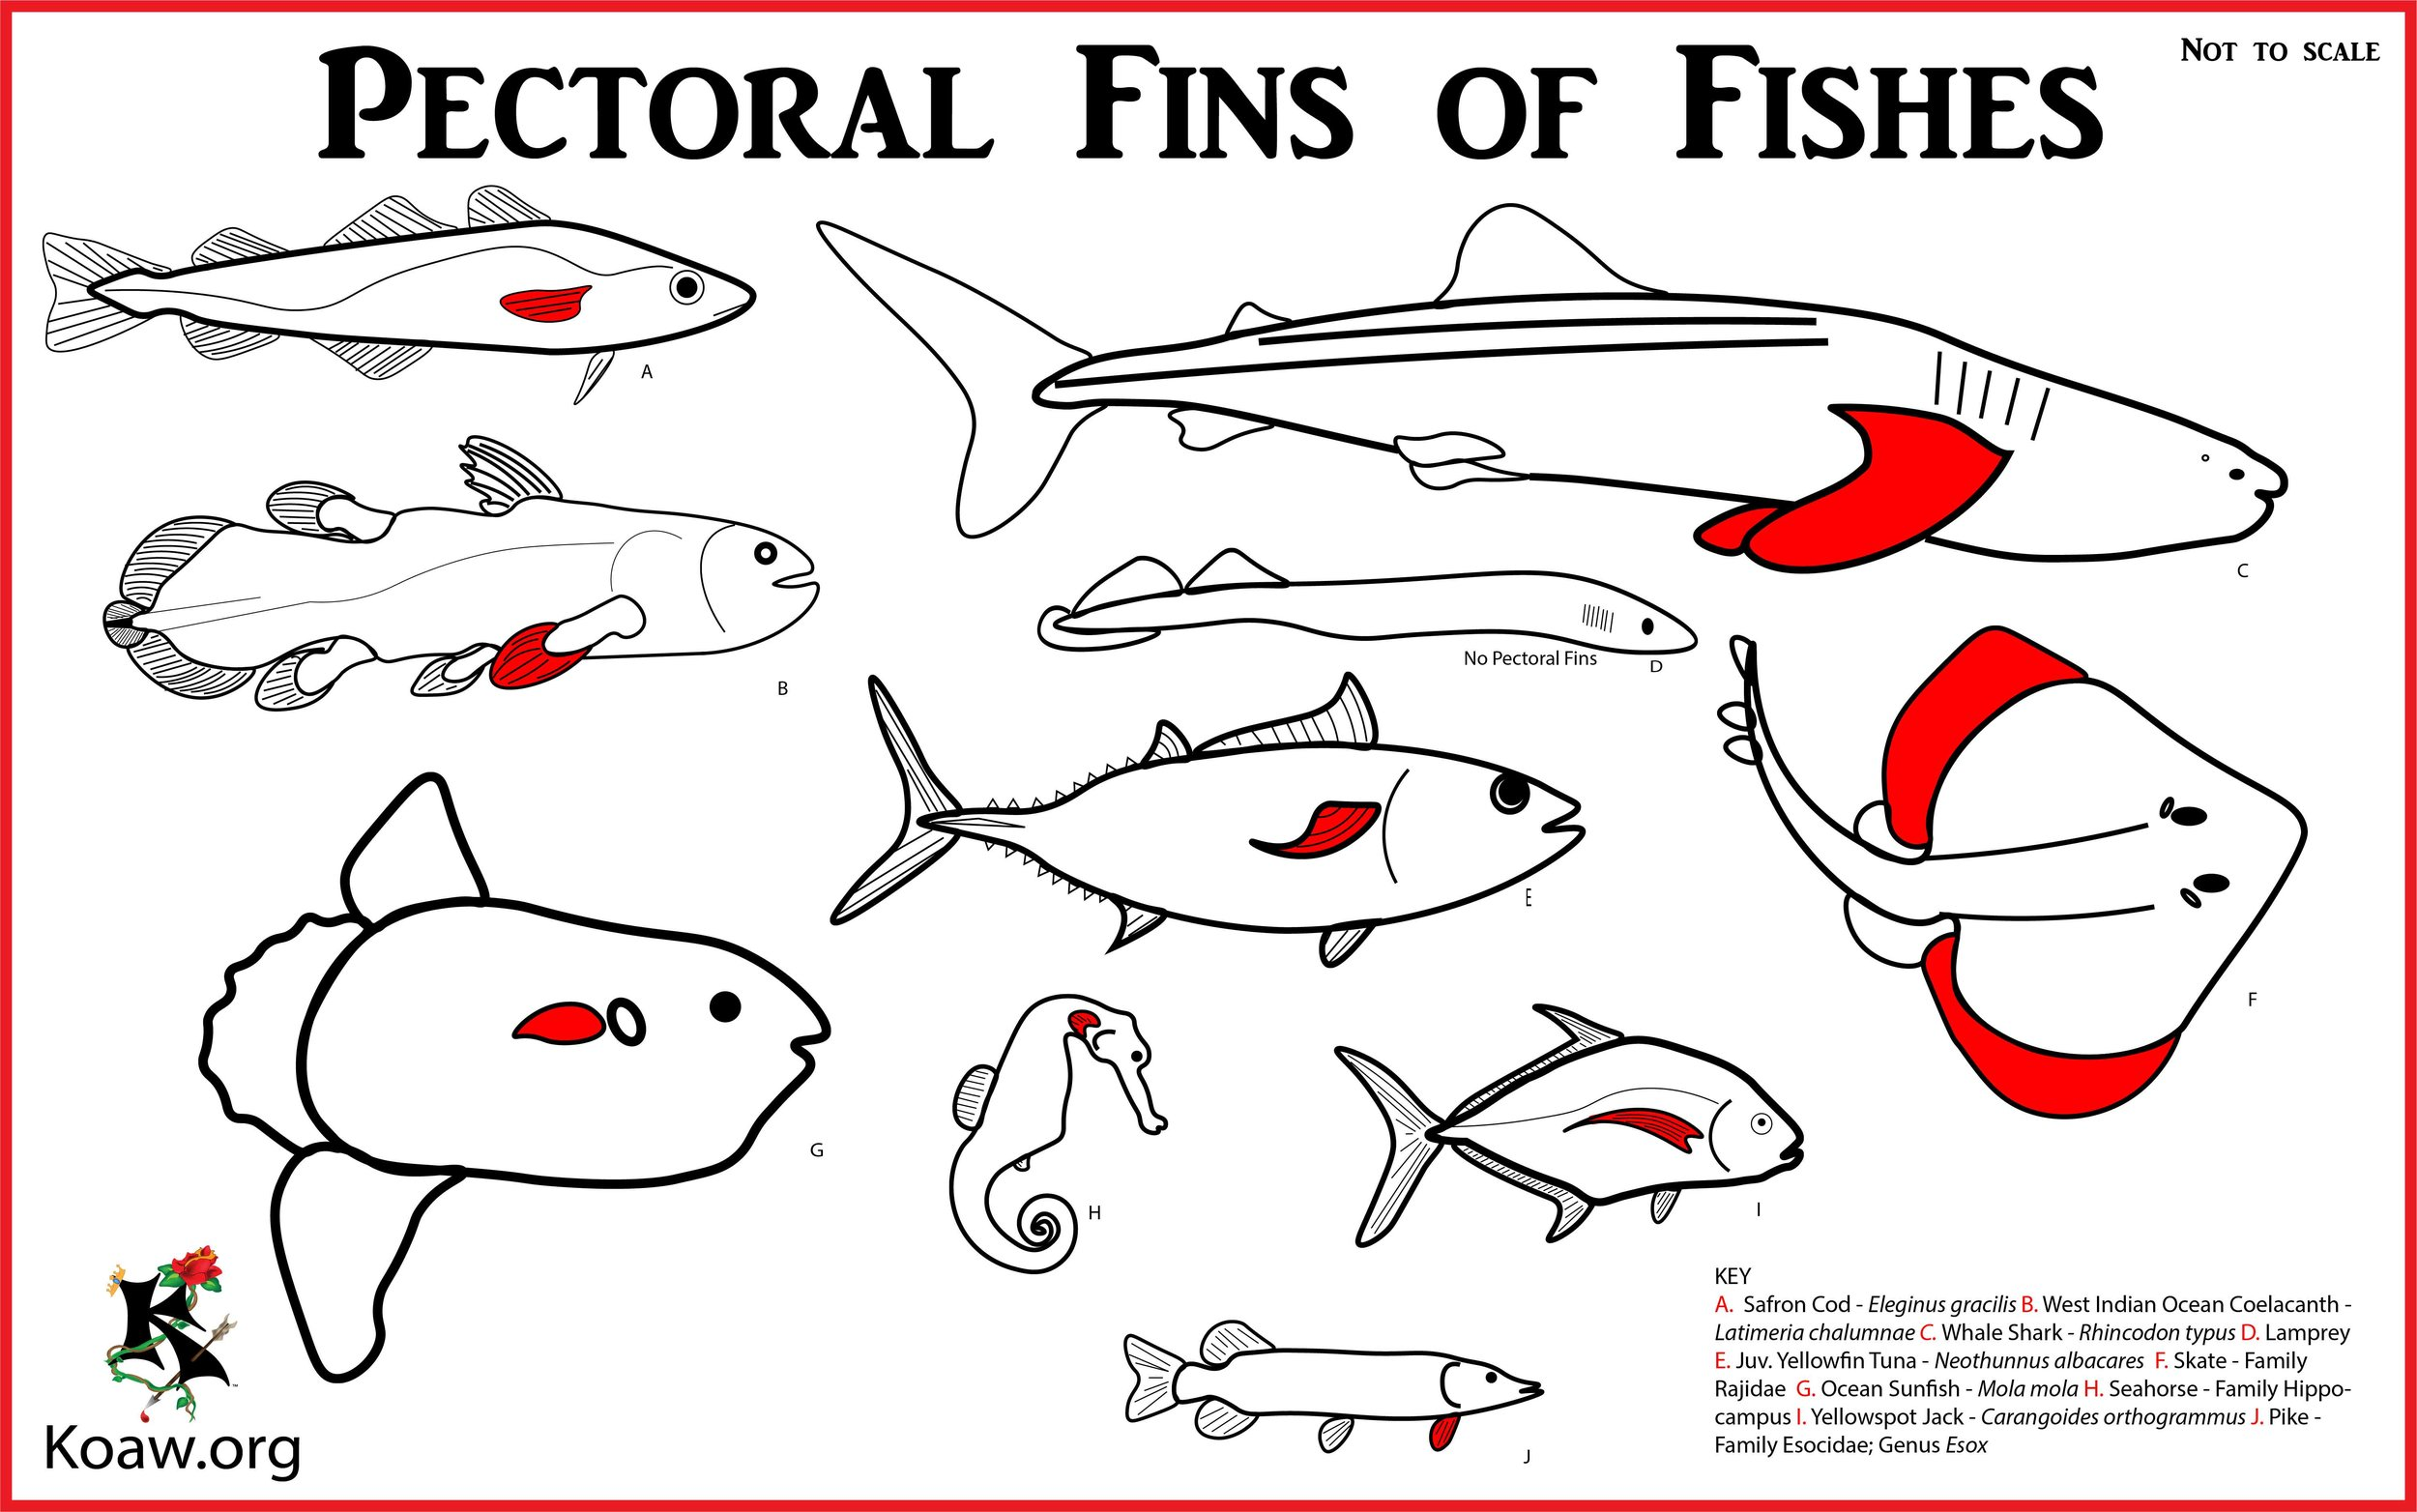 Pectoral Fins of Fishes - Illustration by Koaw